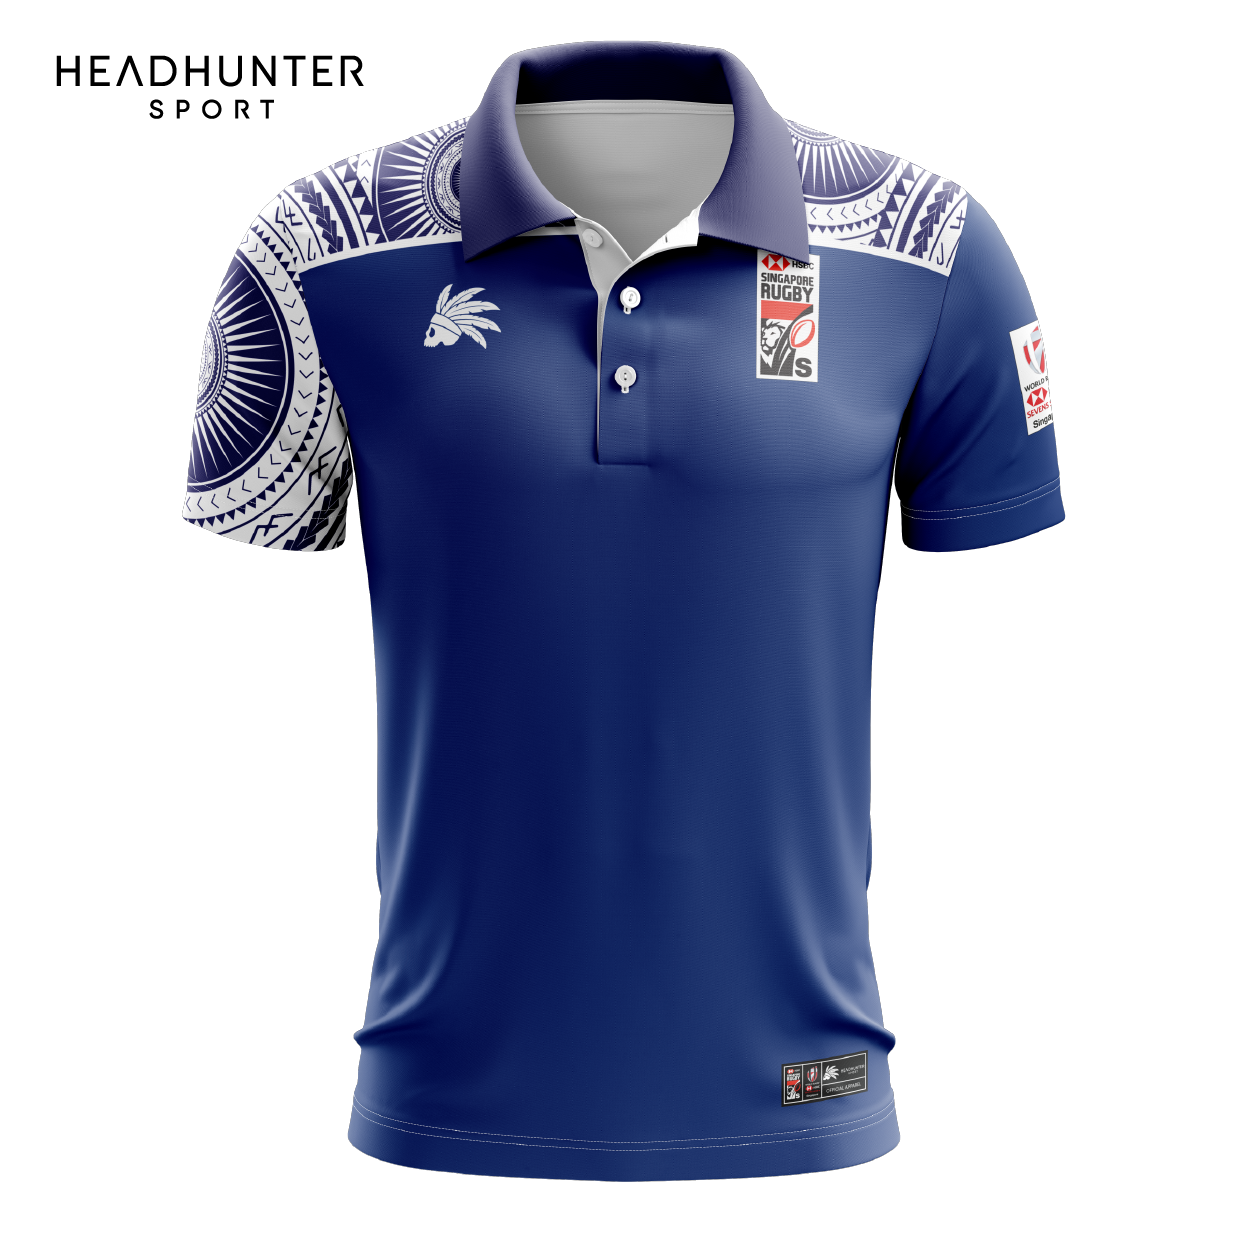 HSBC RUGBY 7S SERIES SINGAPORE 2019 MERCHANDISE SAMOA POLO